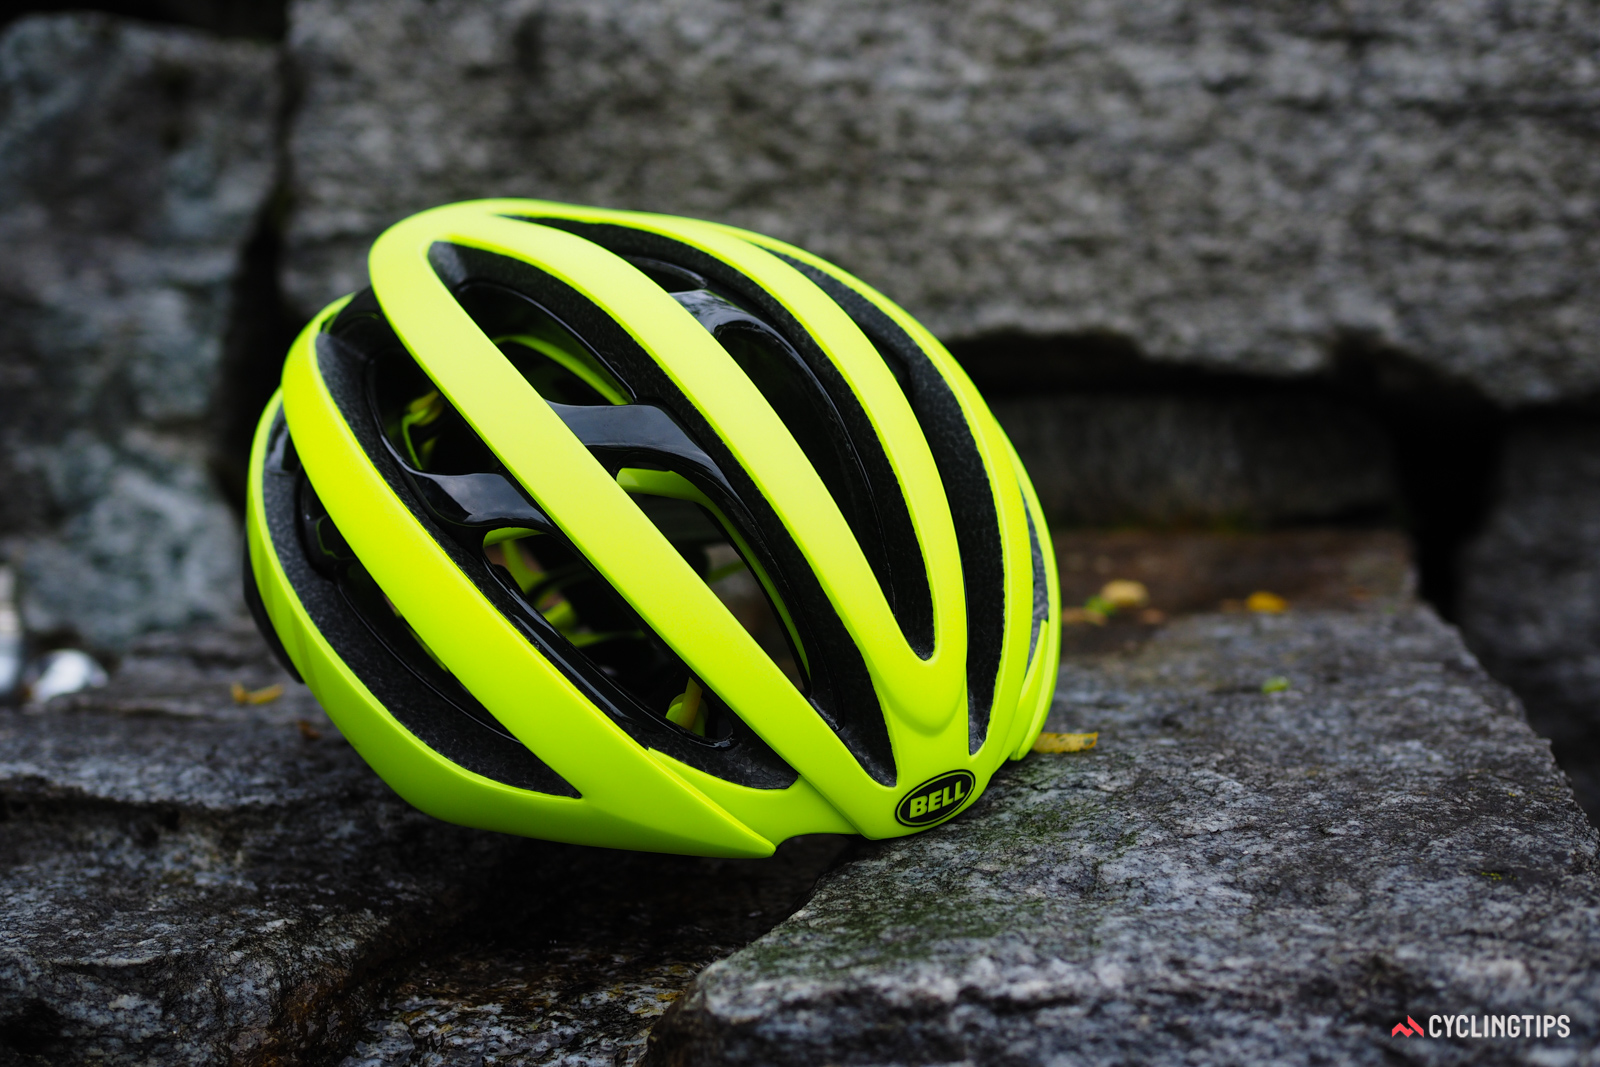 Bell's new Zephyr helmet looks normal enough, but hidden underneath is a construction method unlike any other bicycle helmet on the market.